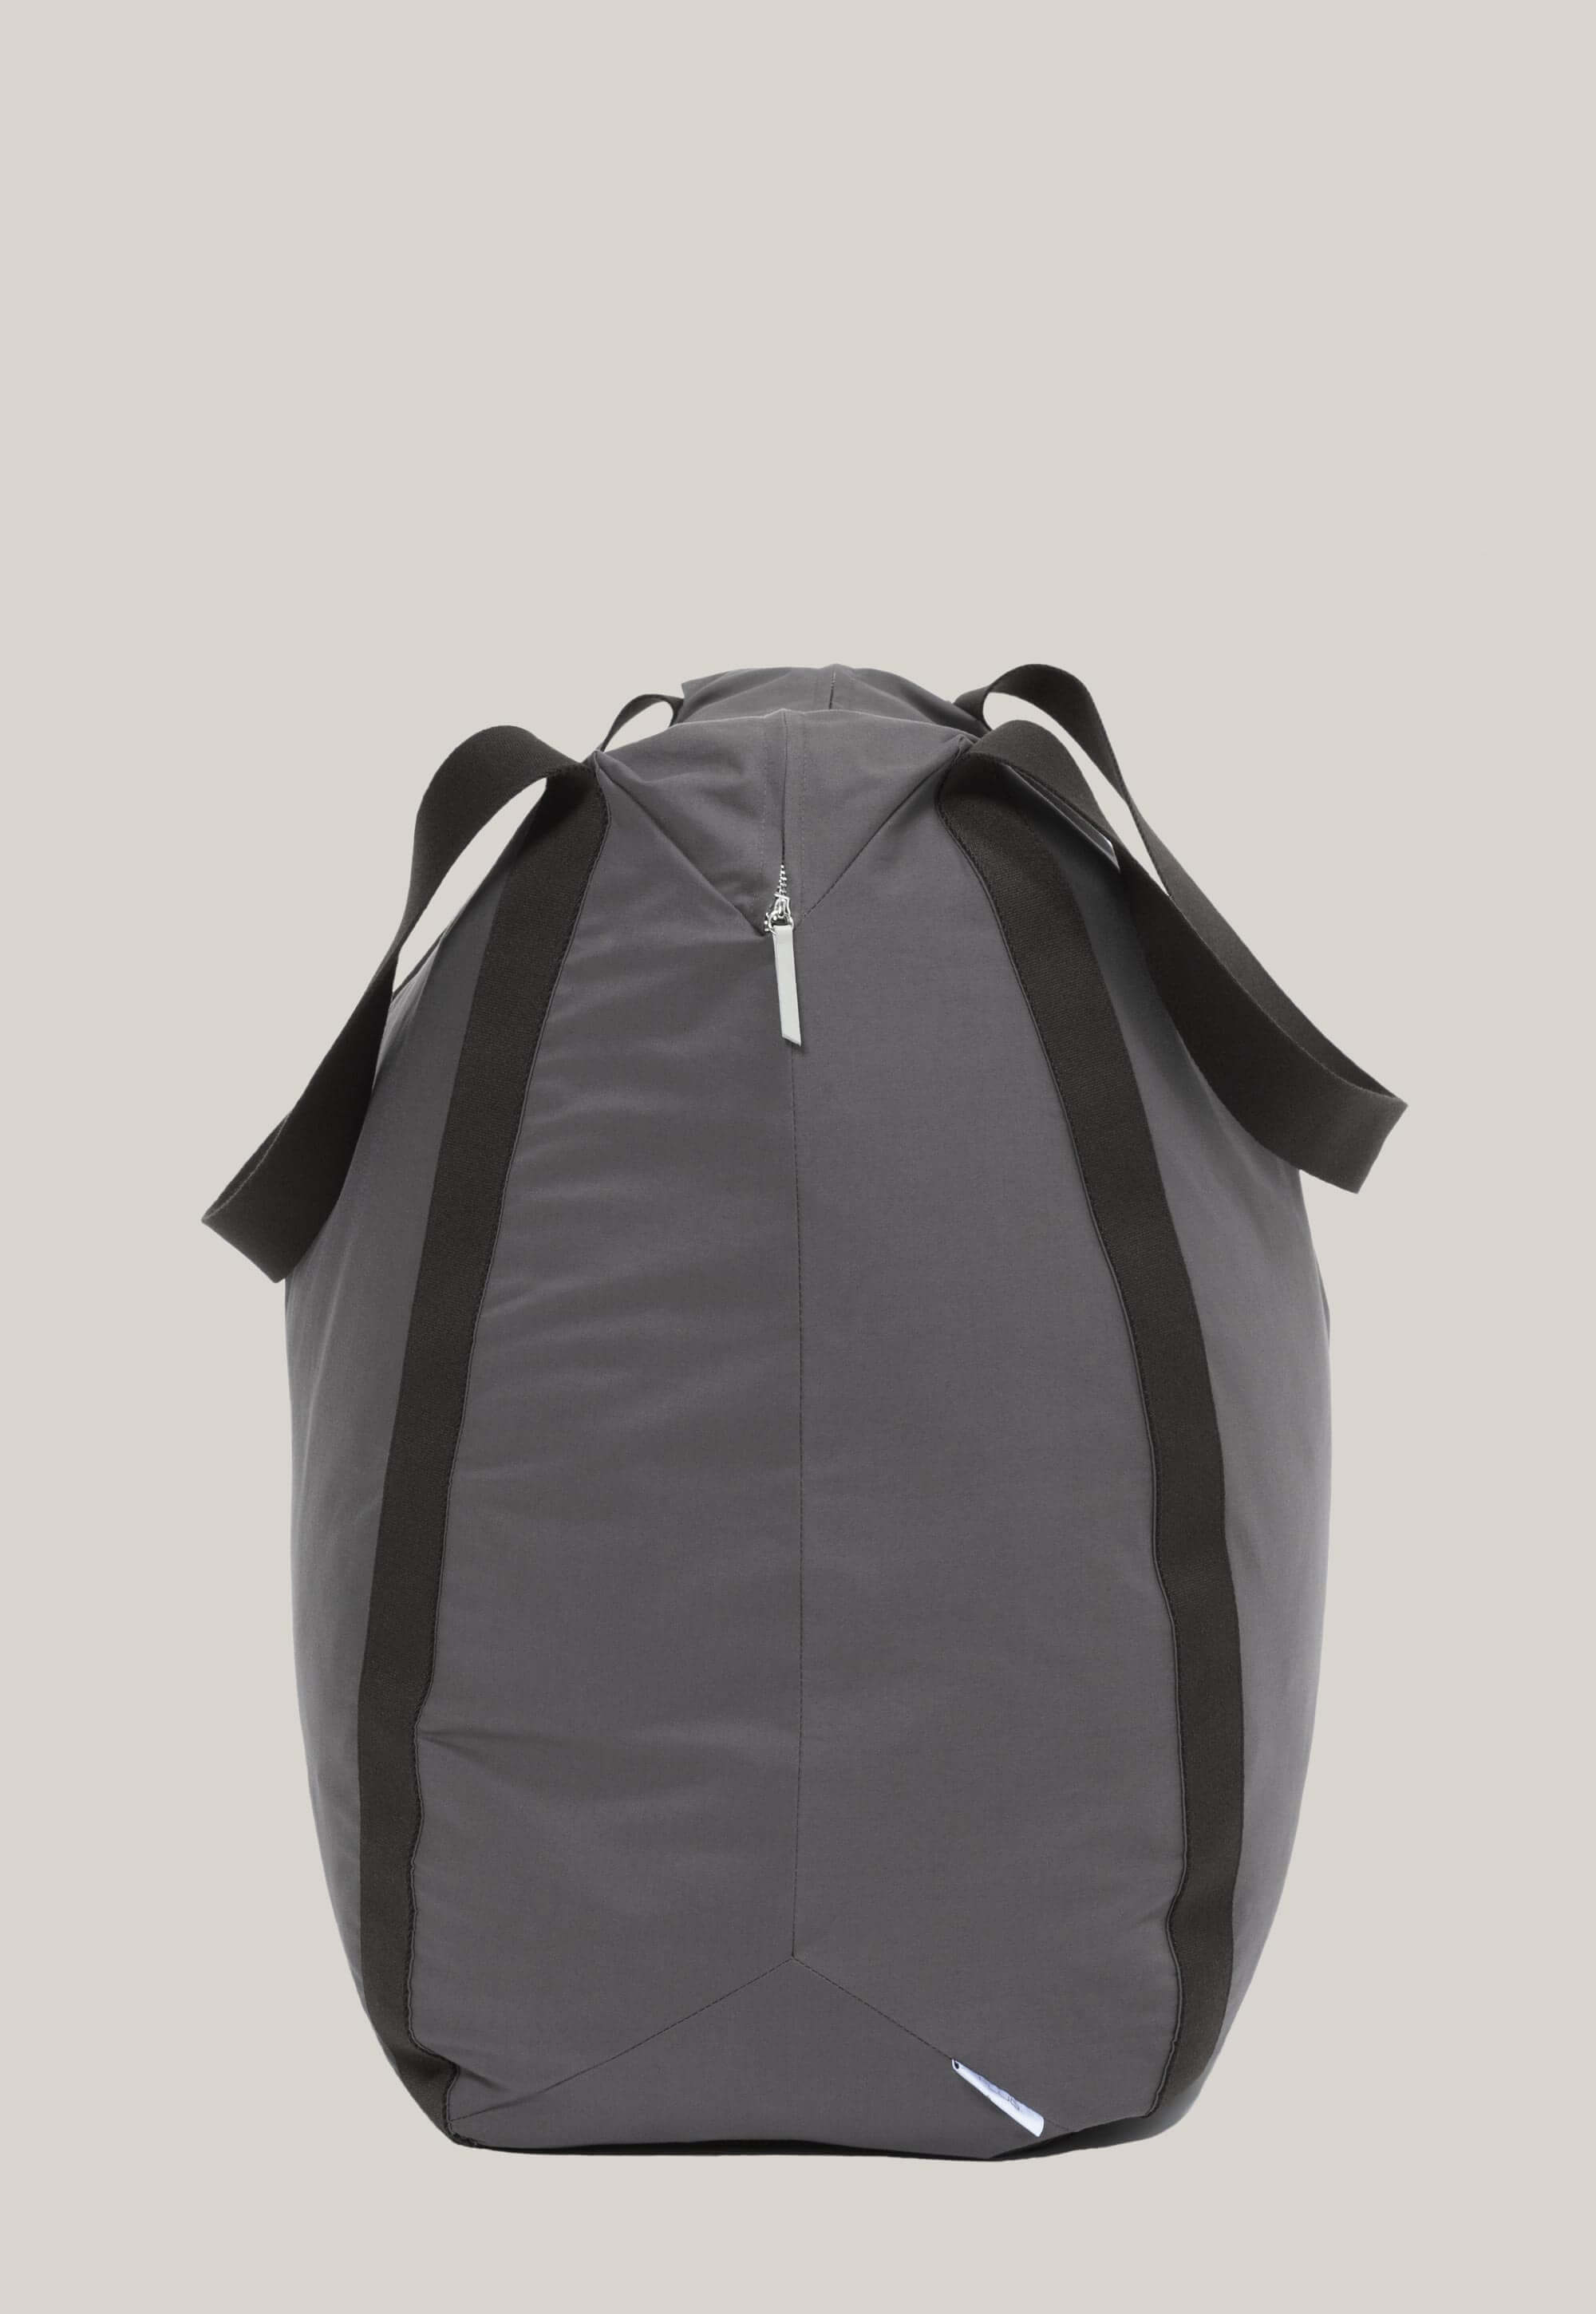 nebukuro-sleepingbag-minimal-bag-02